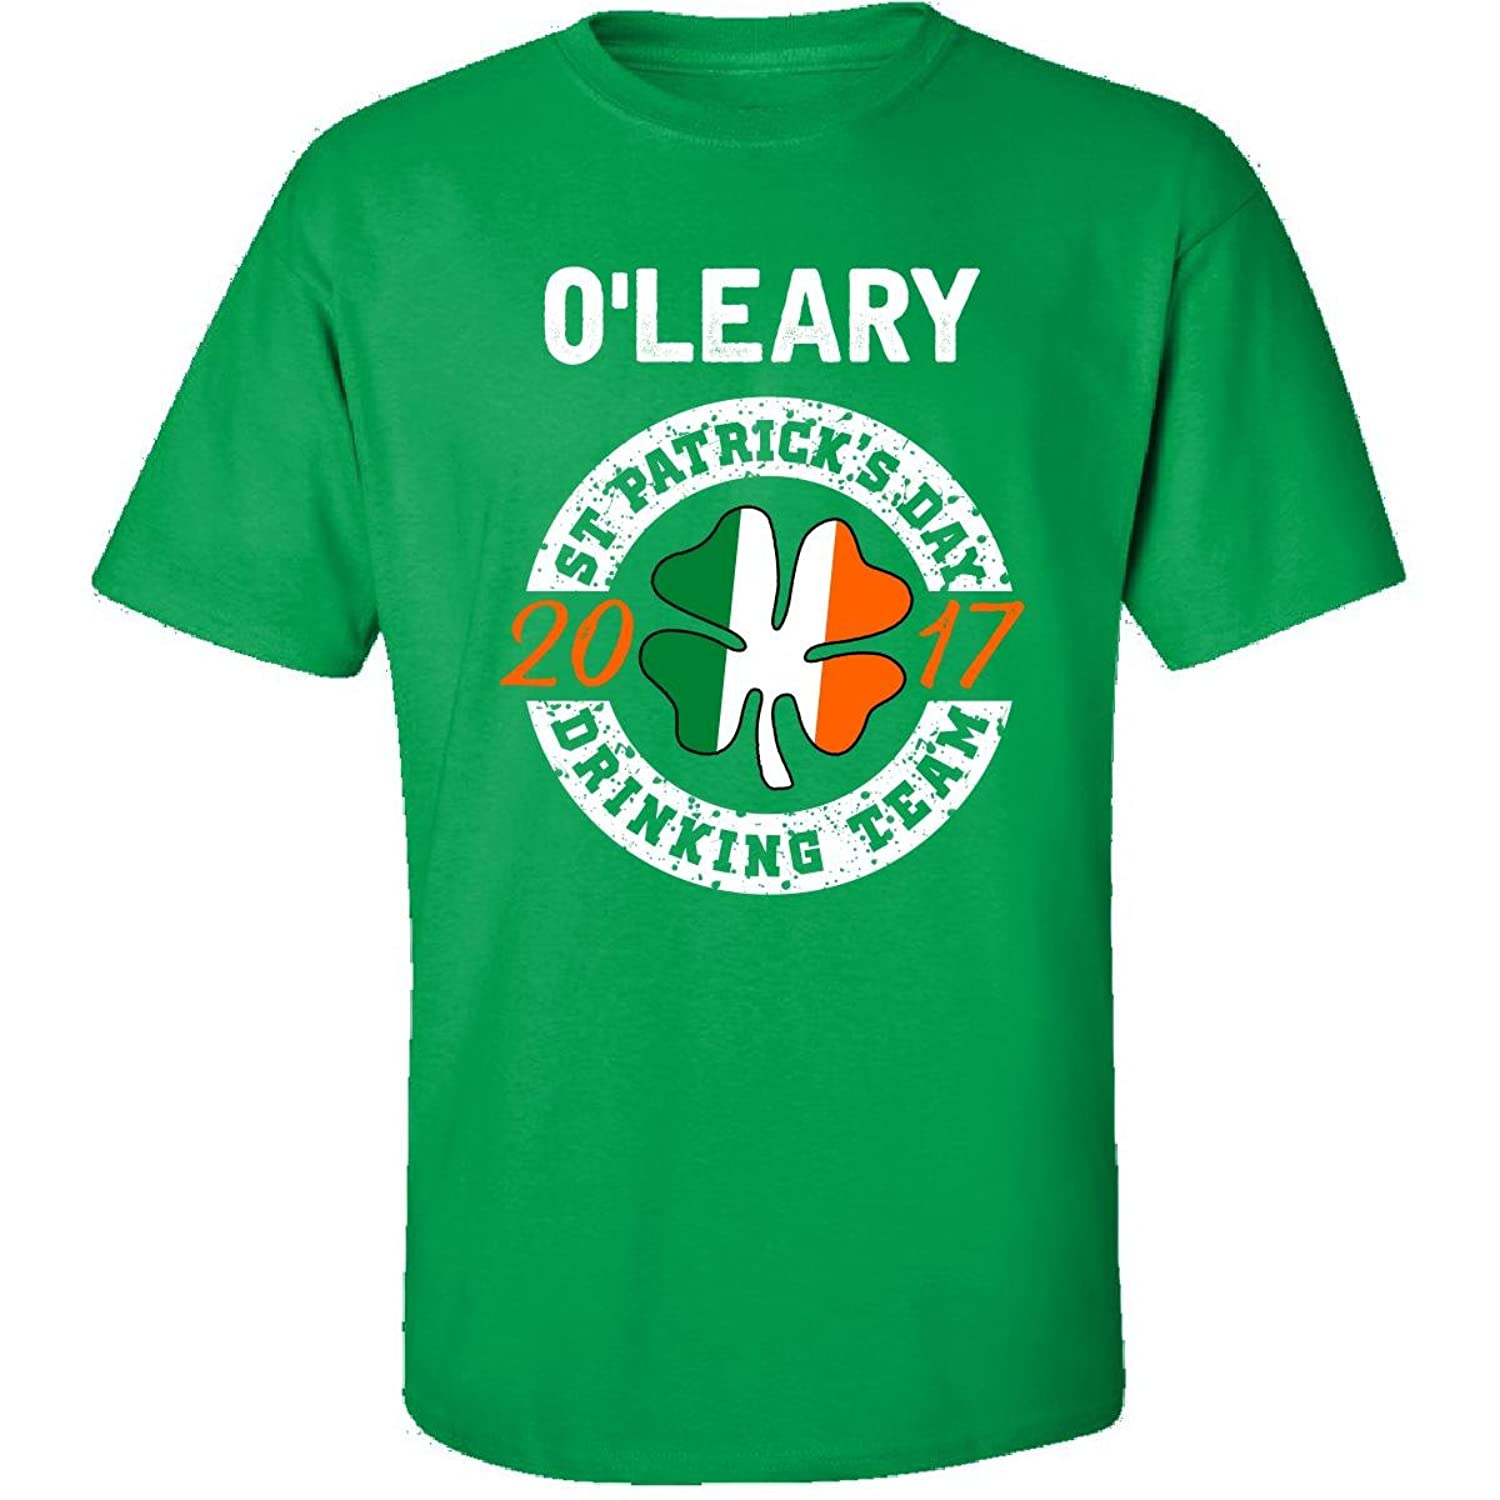 Oleary St Patricks Day 2017 Drinking Team Irish - Adult Shirt